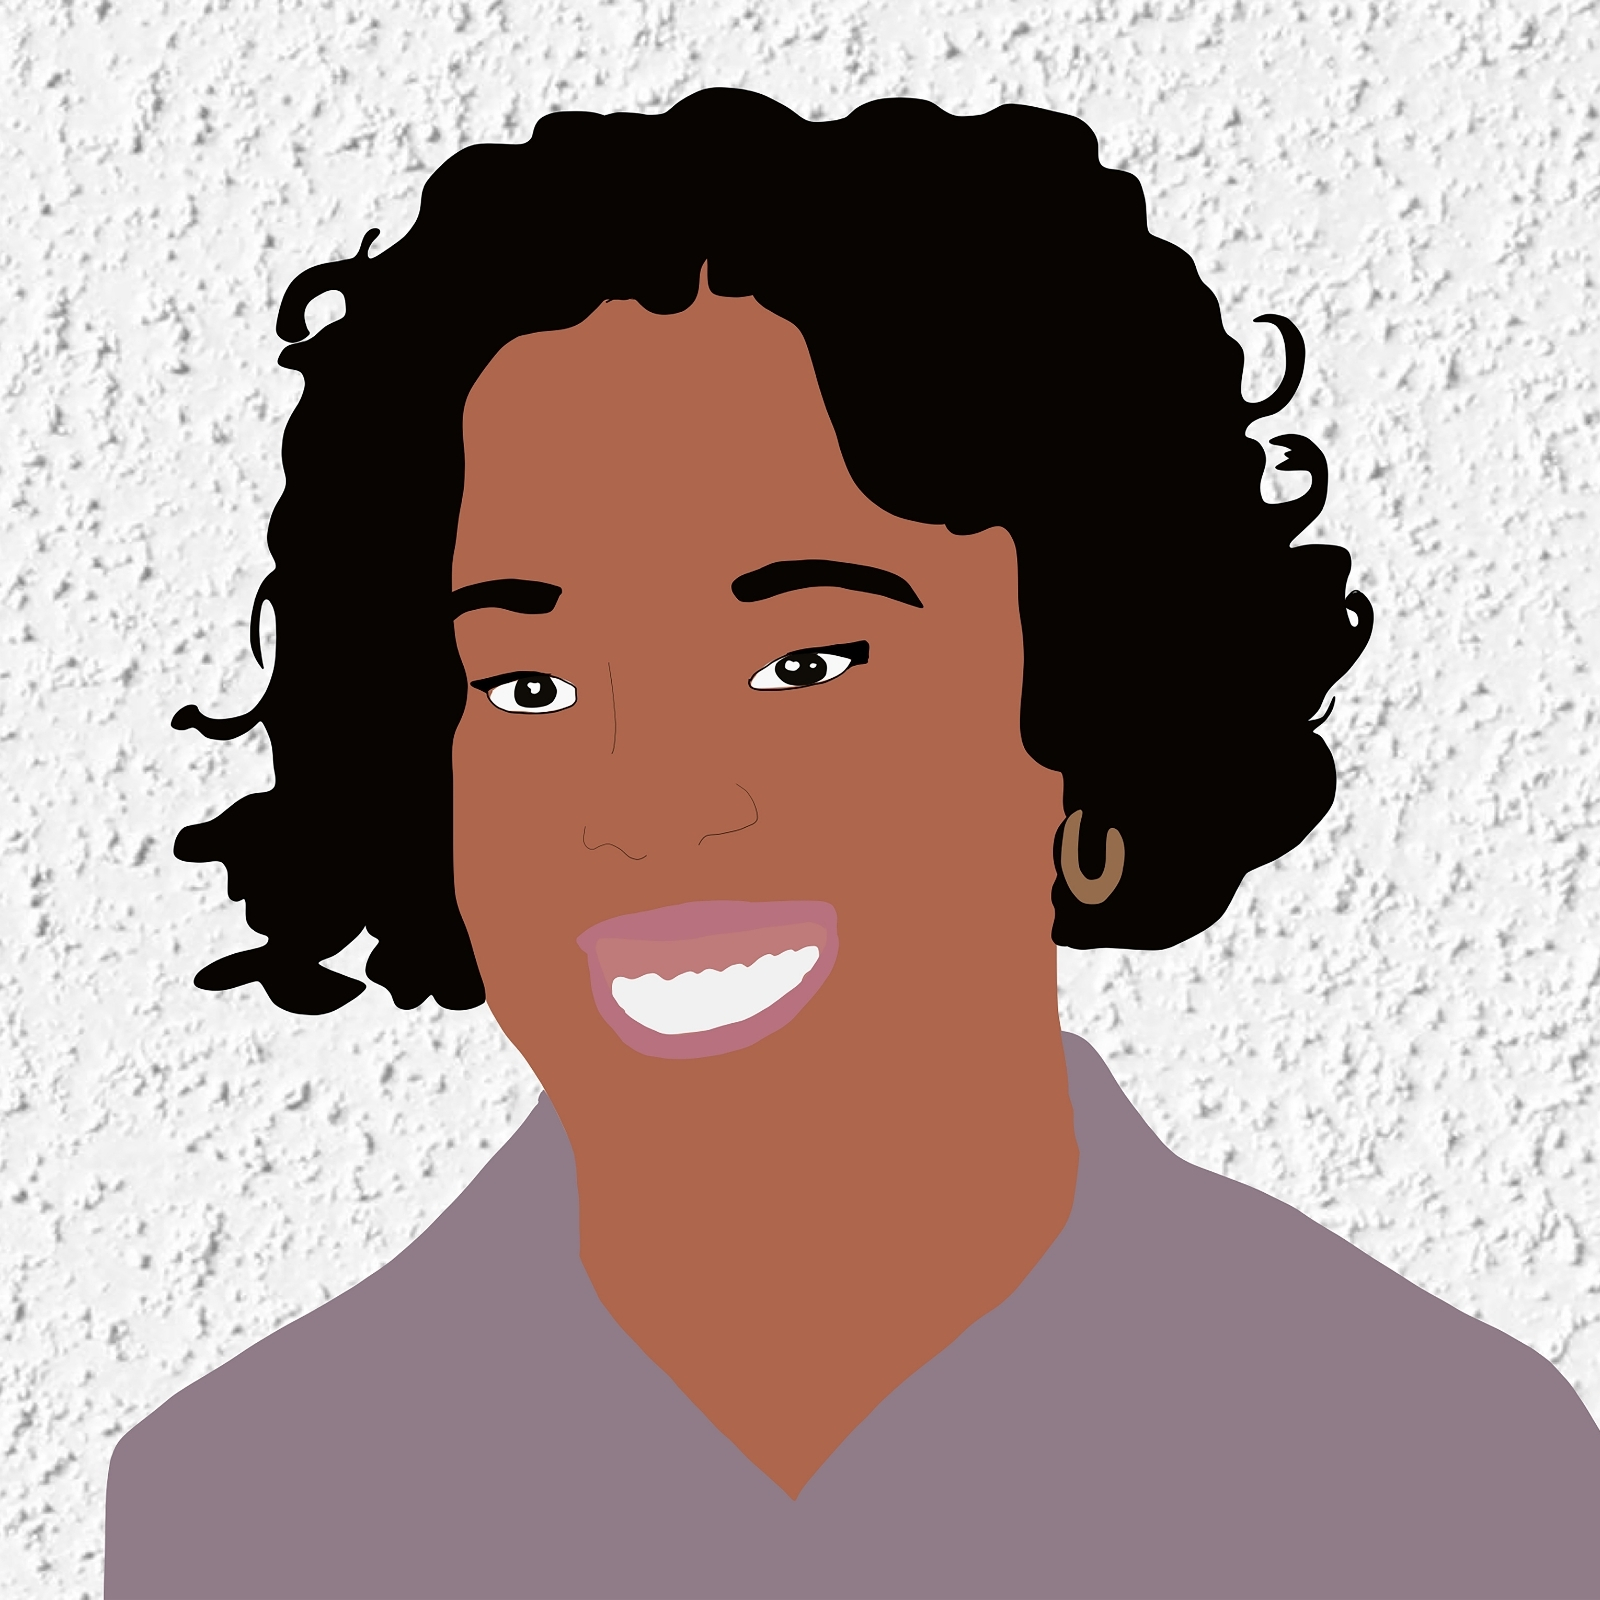 Digital illustration of Brianna smiling against a white stucco background.